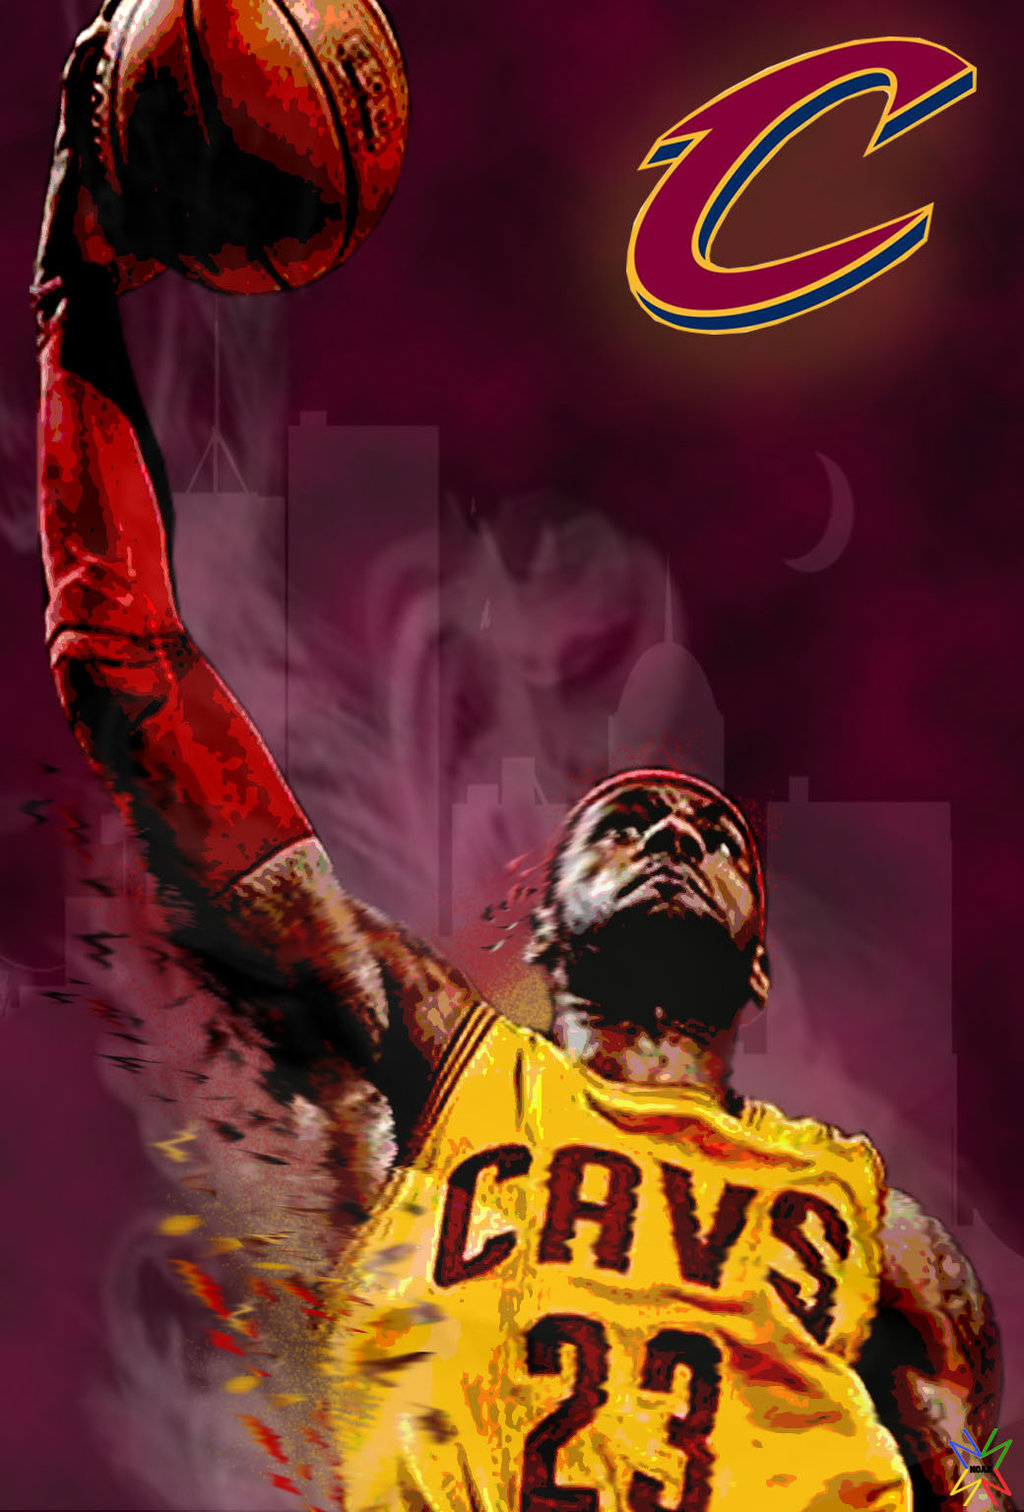 Cleveland cavaliers wallpaper hd wallpapersafari - Cleveland cavaliers wallpaper ...